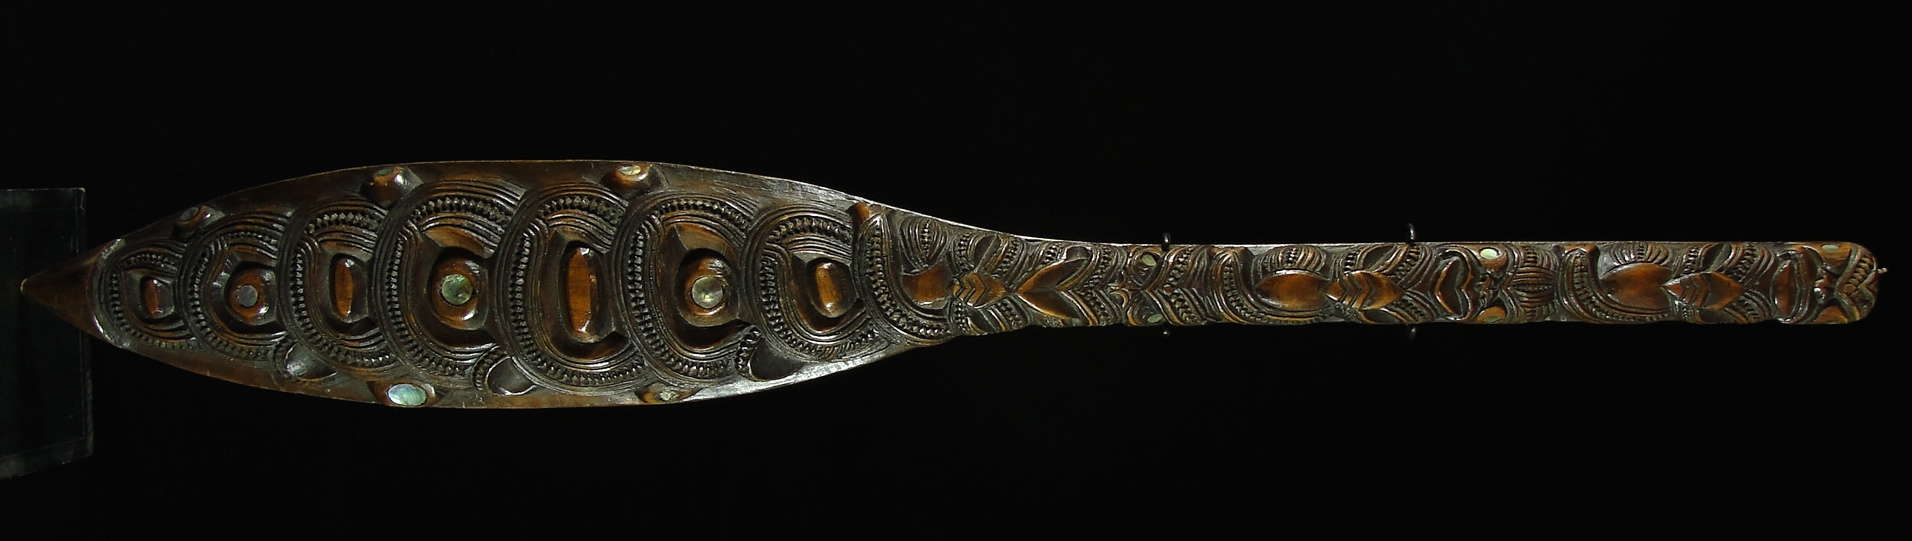 Later made for sale maori Dance Paddle